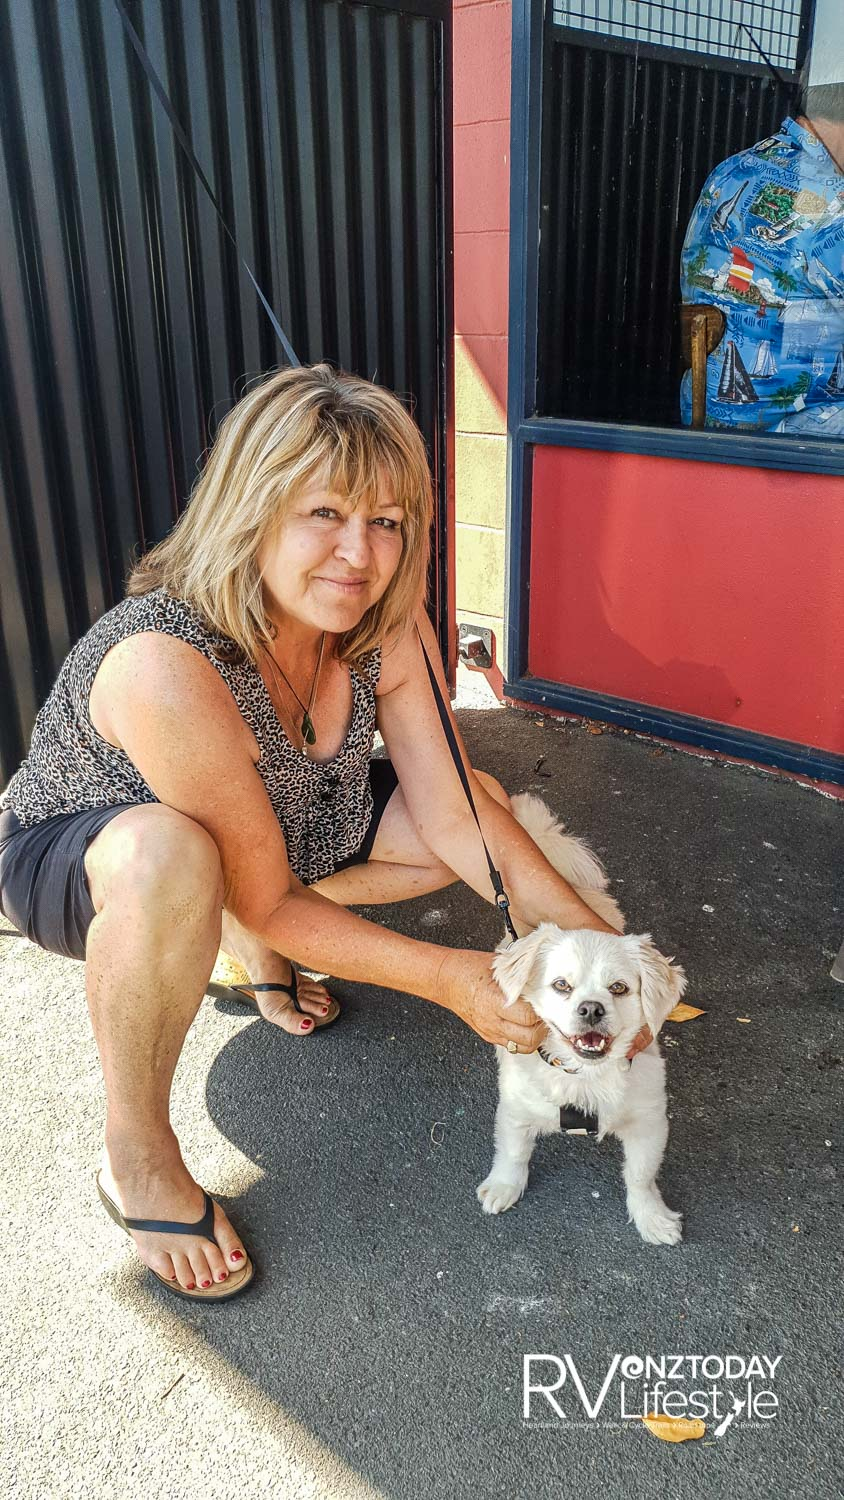 So nice to see Leslie – she was like my aunty when I was a puppy and I lived with my first mama in Tauranga